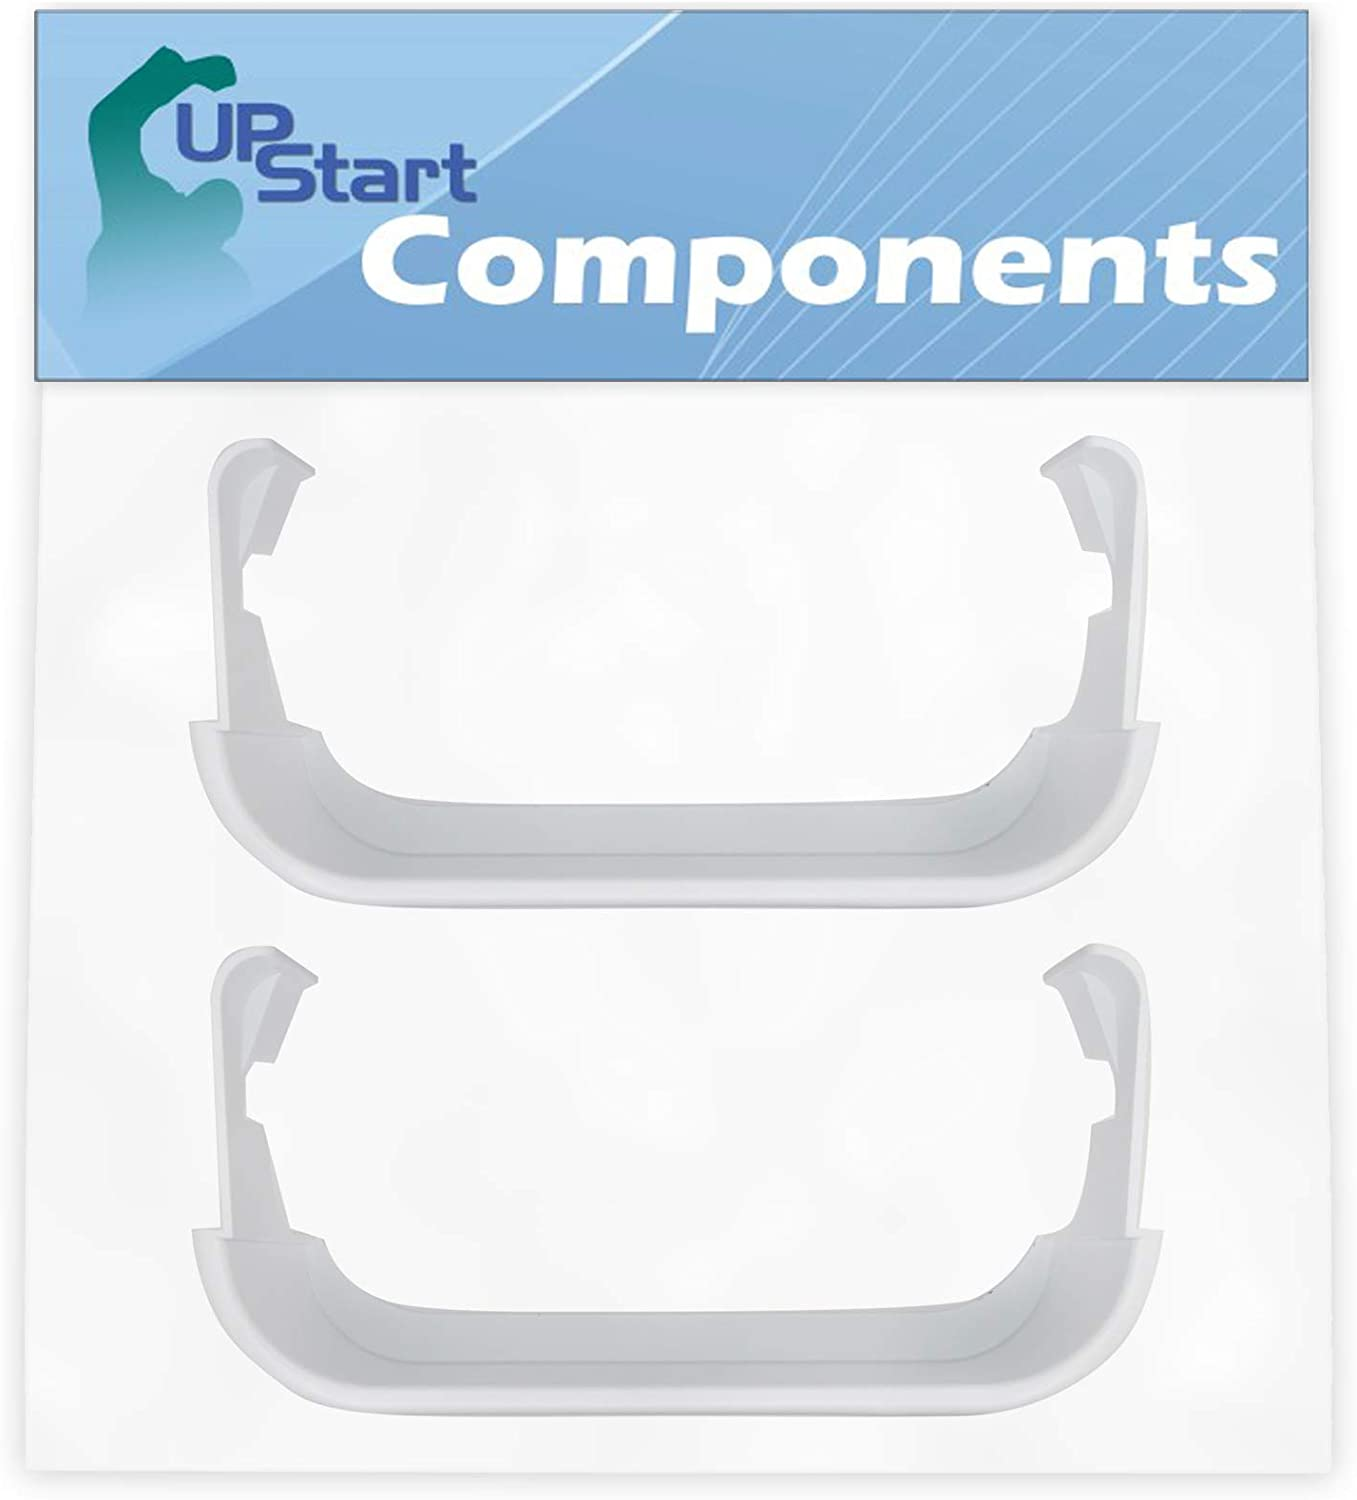 2-Pack 240351601 Refrigerator Freezer Door Bin Side Shelf Replacement for White Westinghouse WRS6W1EW0 Refrigerator - Compatible with 240351601 Door Bin - UpStart Components Brand